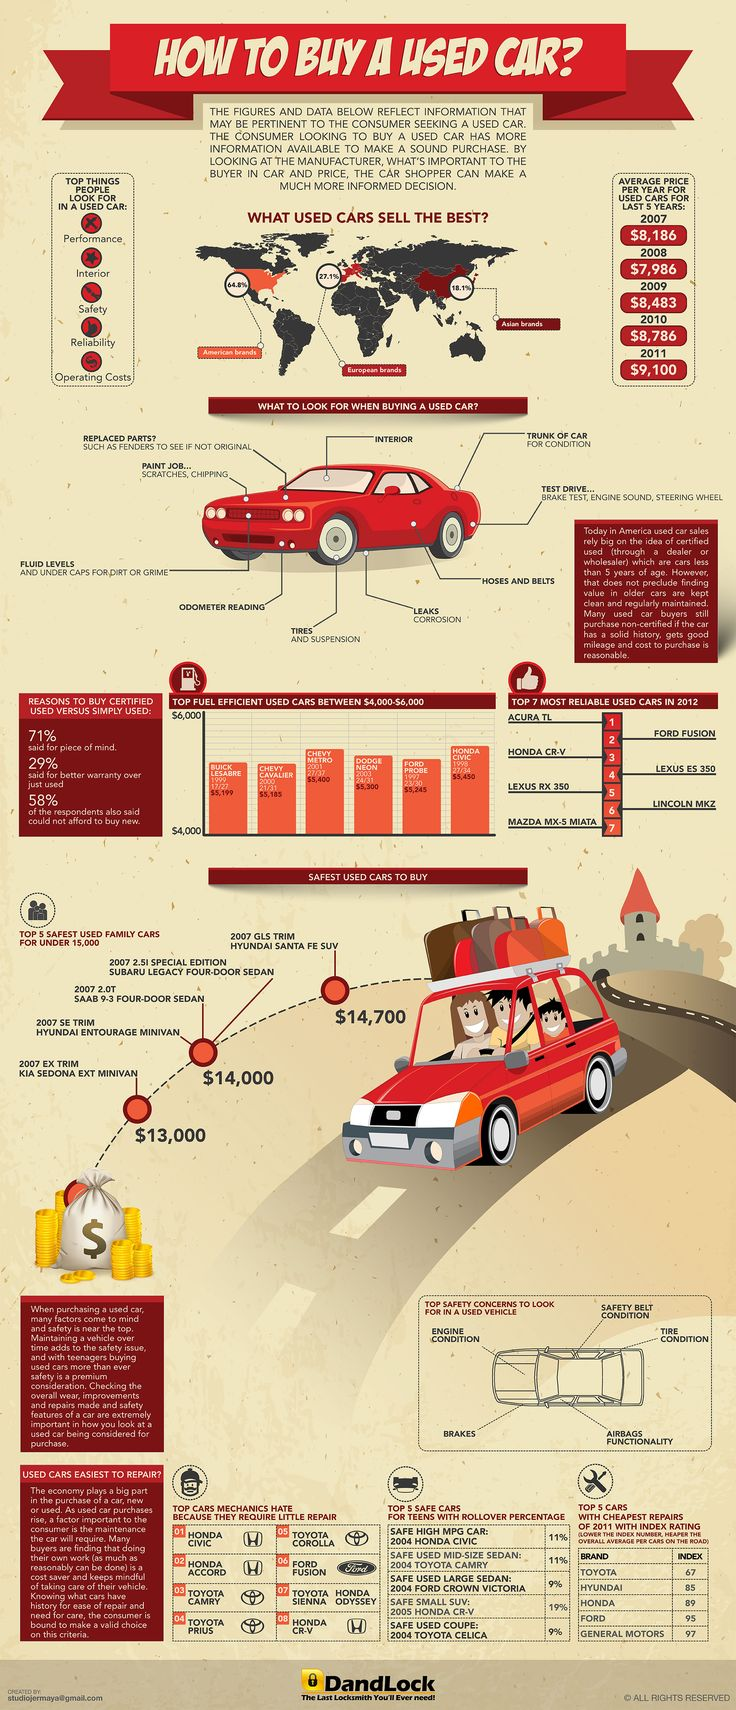 55 Best Cars Motorcycles Images On Pinterest Infographic 2007 Hyundai Entourage Engine Diagram How To Buy A Used Car News I Like